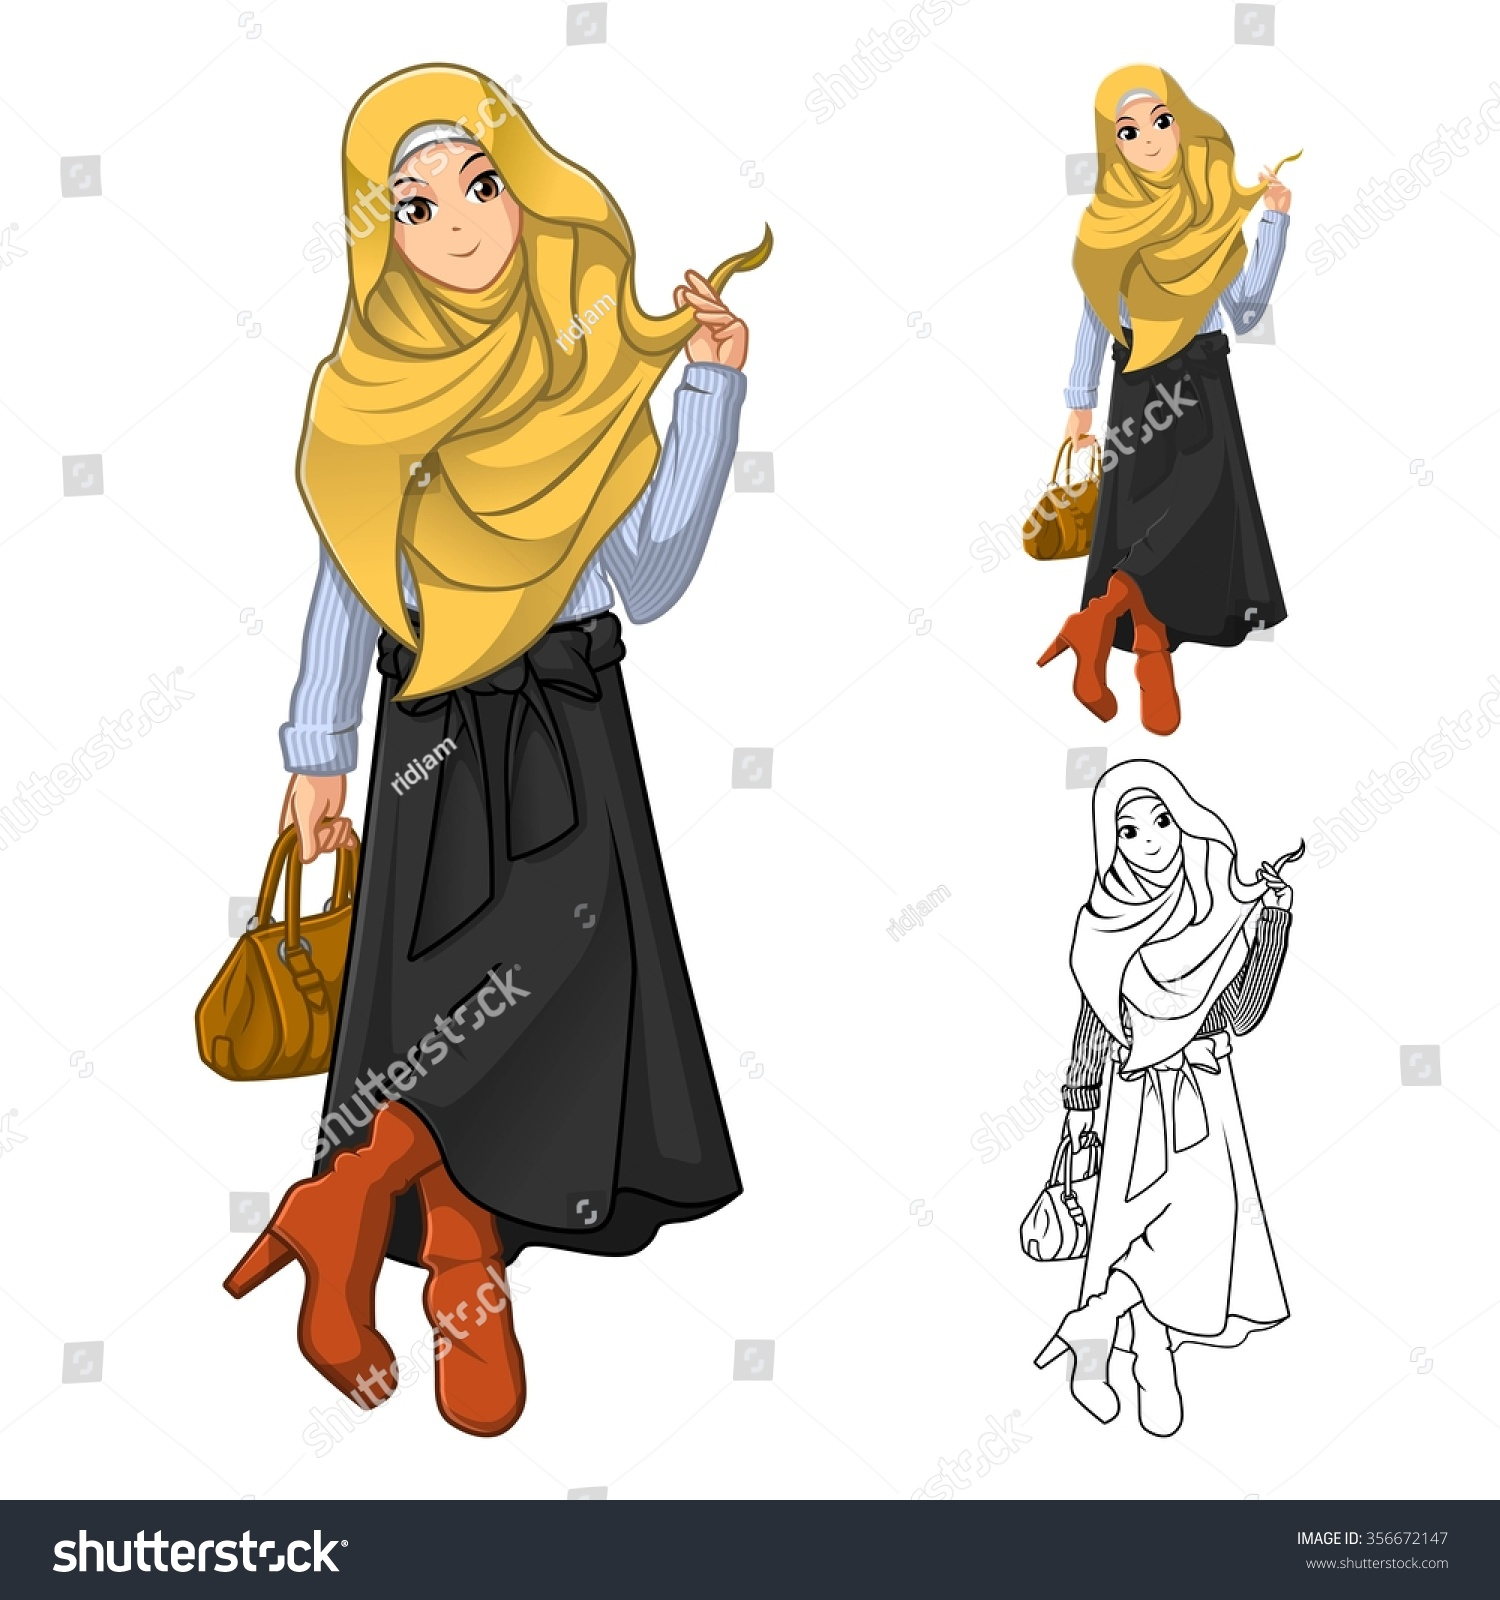 bag muslim girl personals Looking for united states muslim bride - search thousands of muslim united states girl matrimonial, muslim united states female profile usa muslim brides.